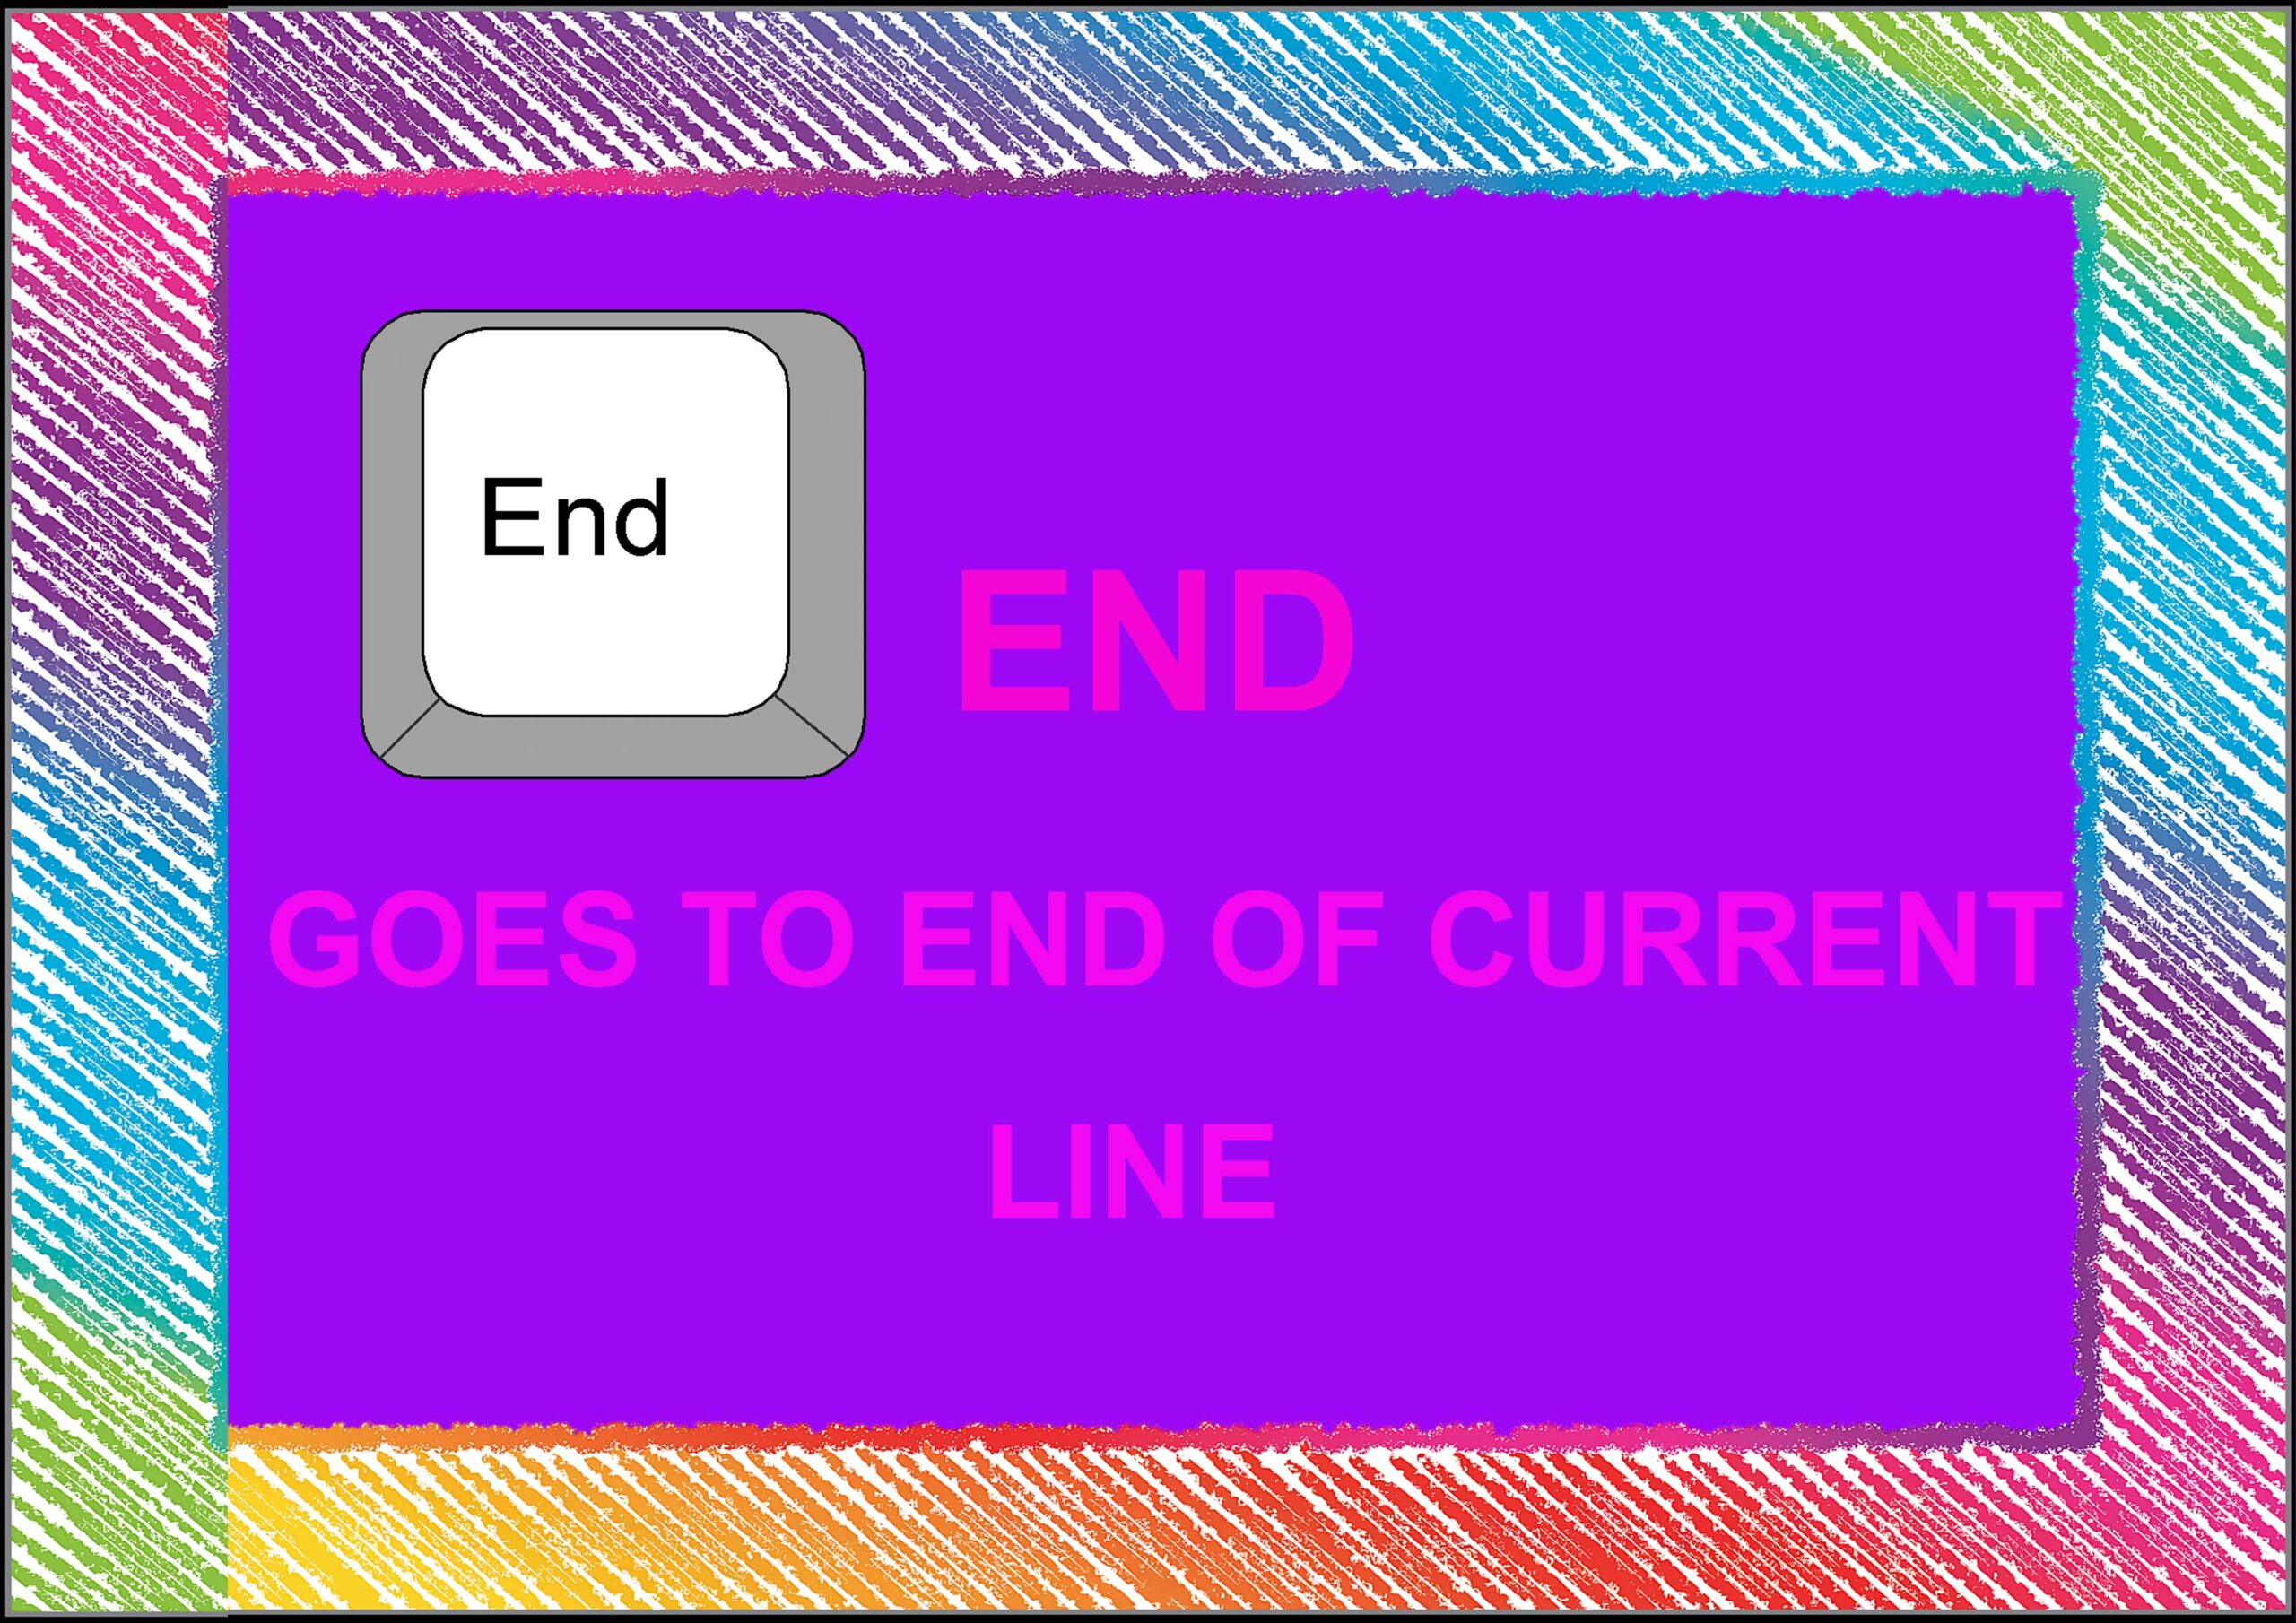 END= Goes To End Of Current Line